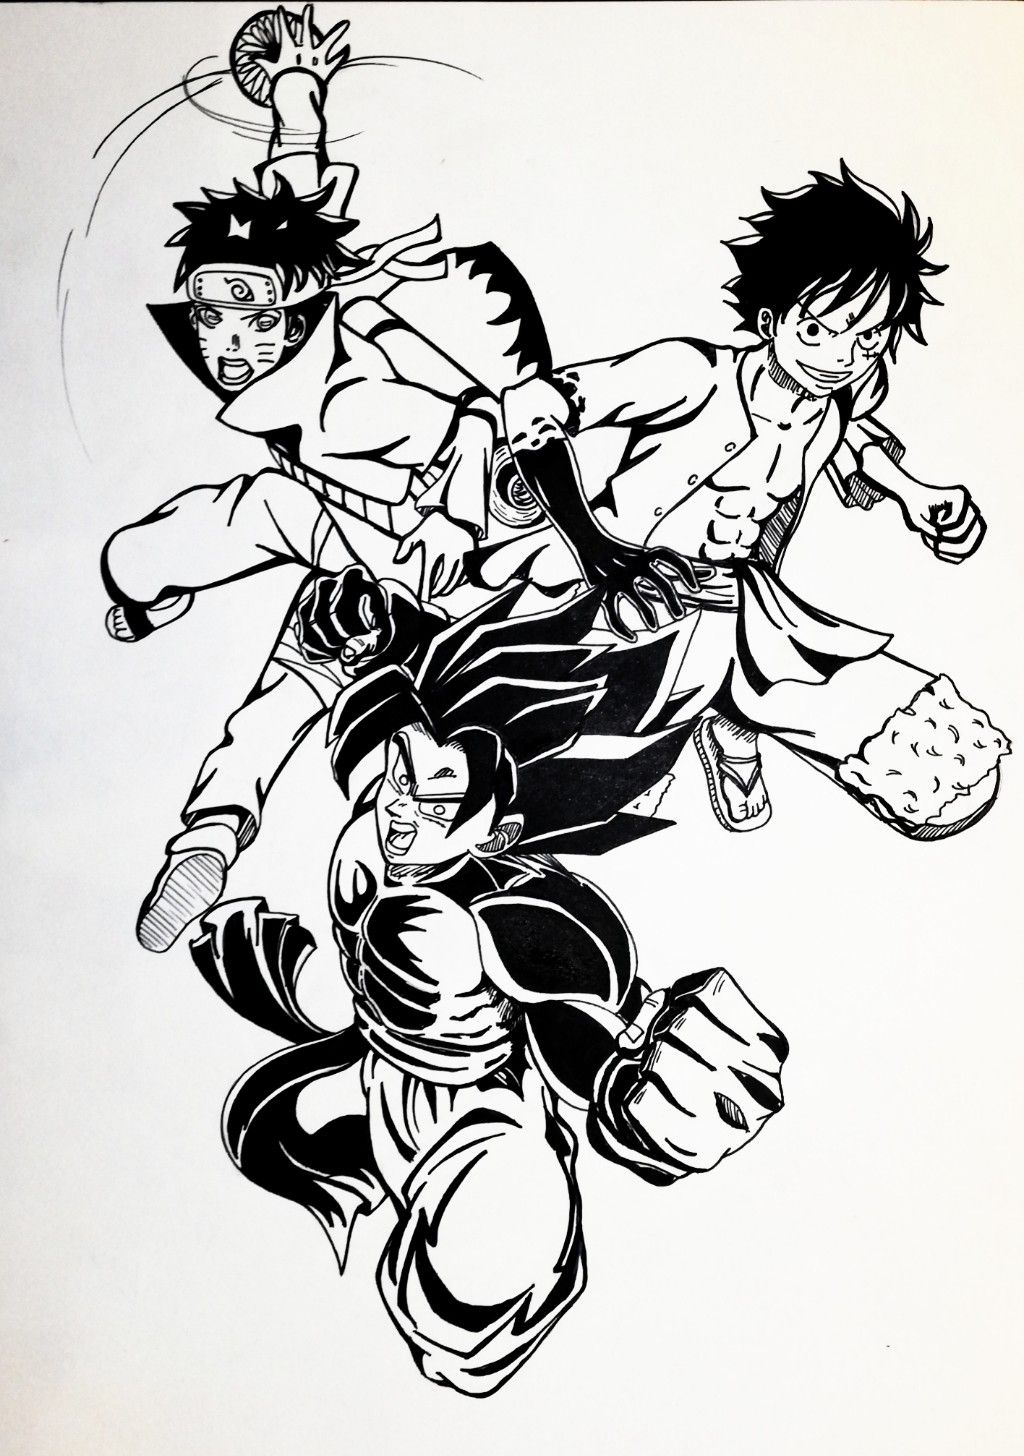 Now with his perfected ultra instinct he can dodge any attack without any toll on his body. goku x naruto x luffy   Anime crossover, Luffy, Goku